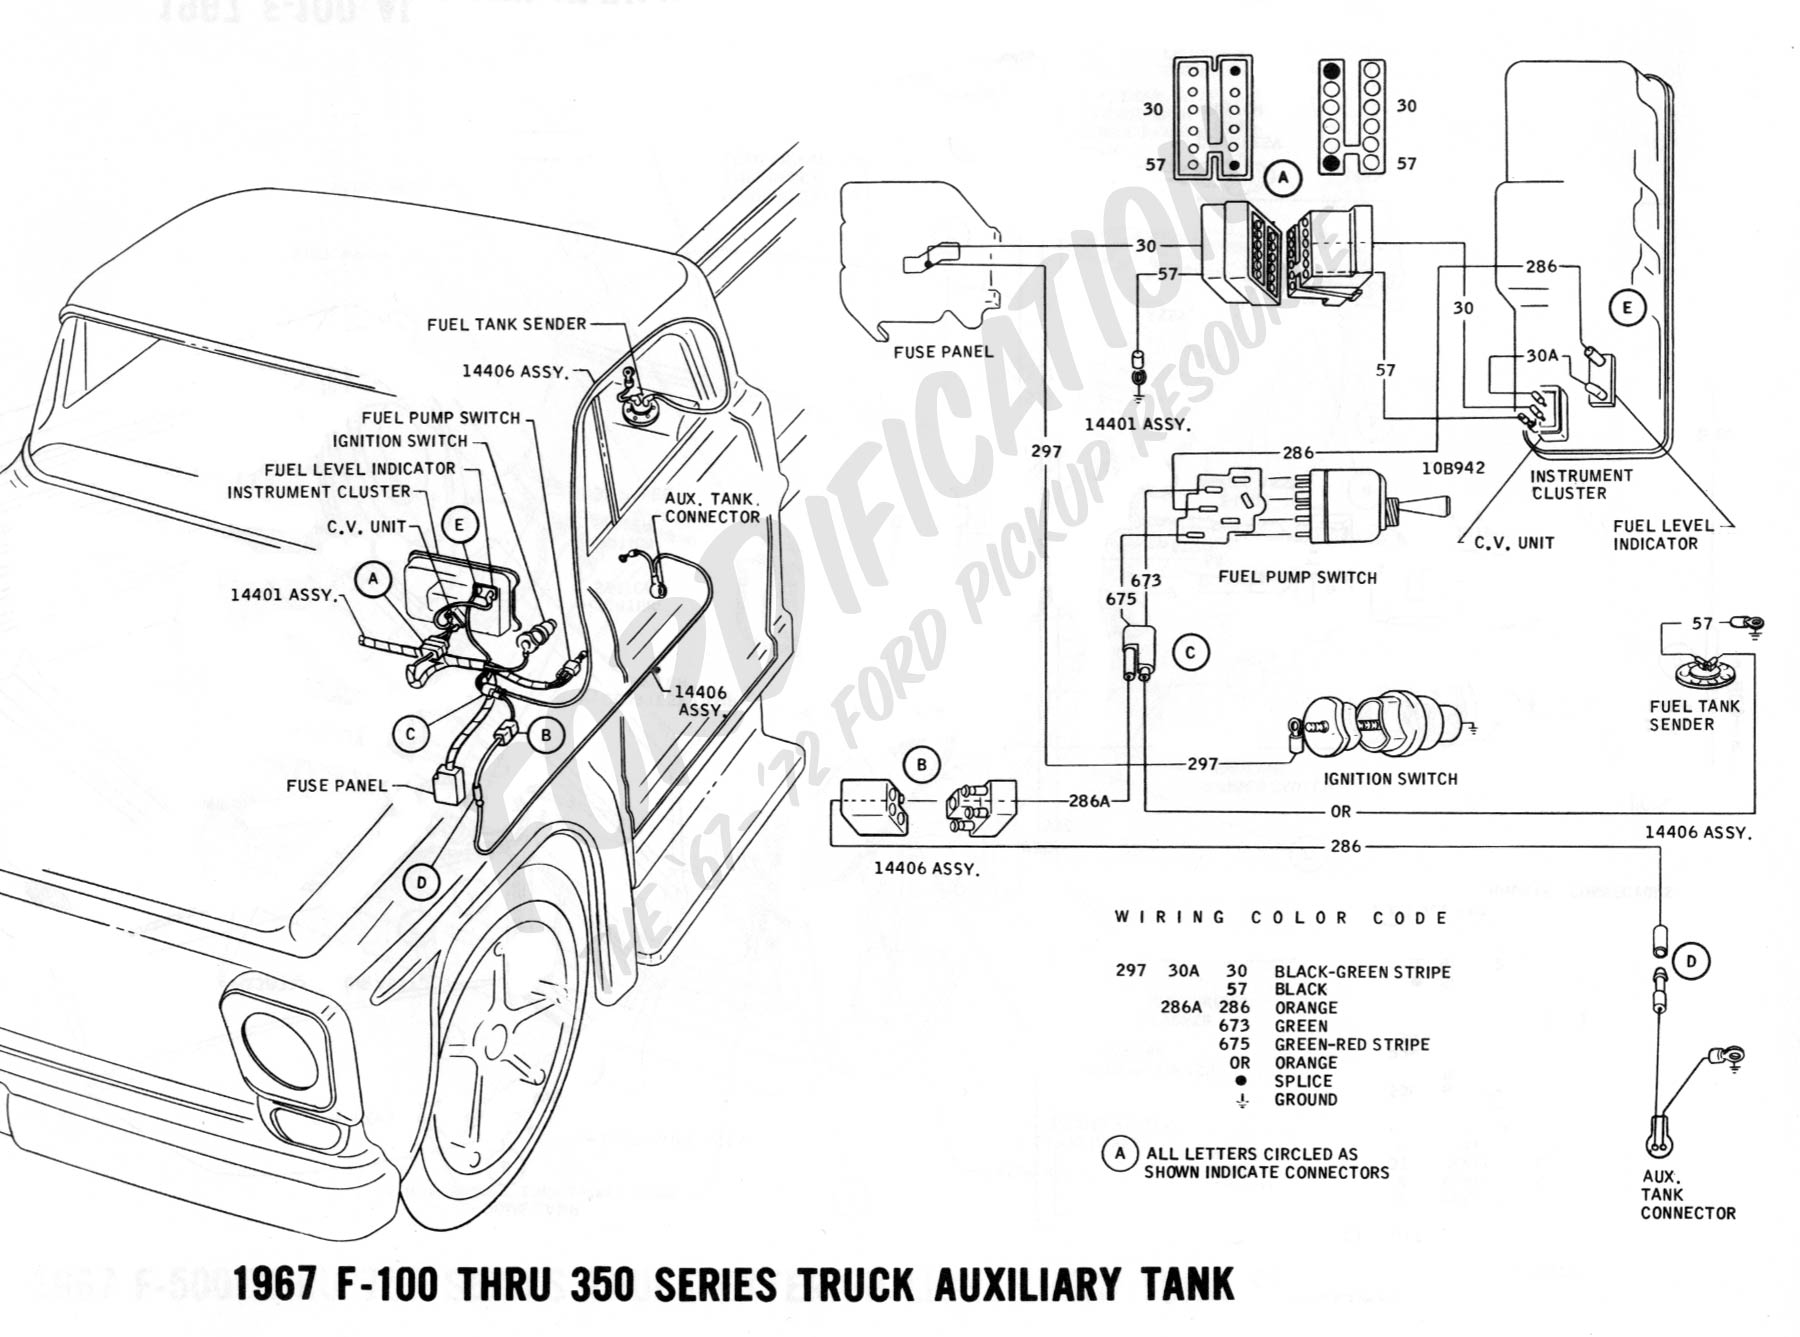 1982 Ford F-100 F-150 To F-350 Truck Electrical Wiring